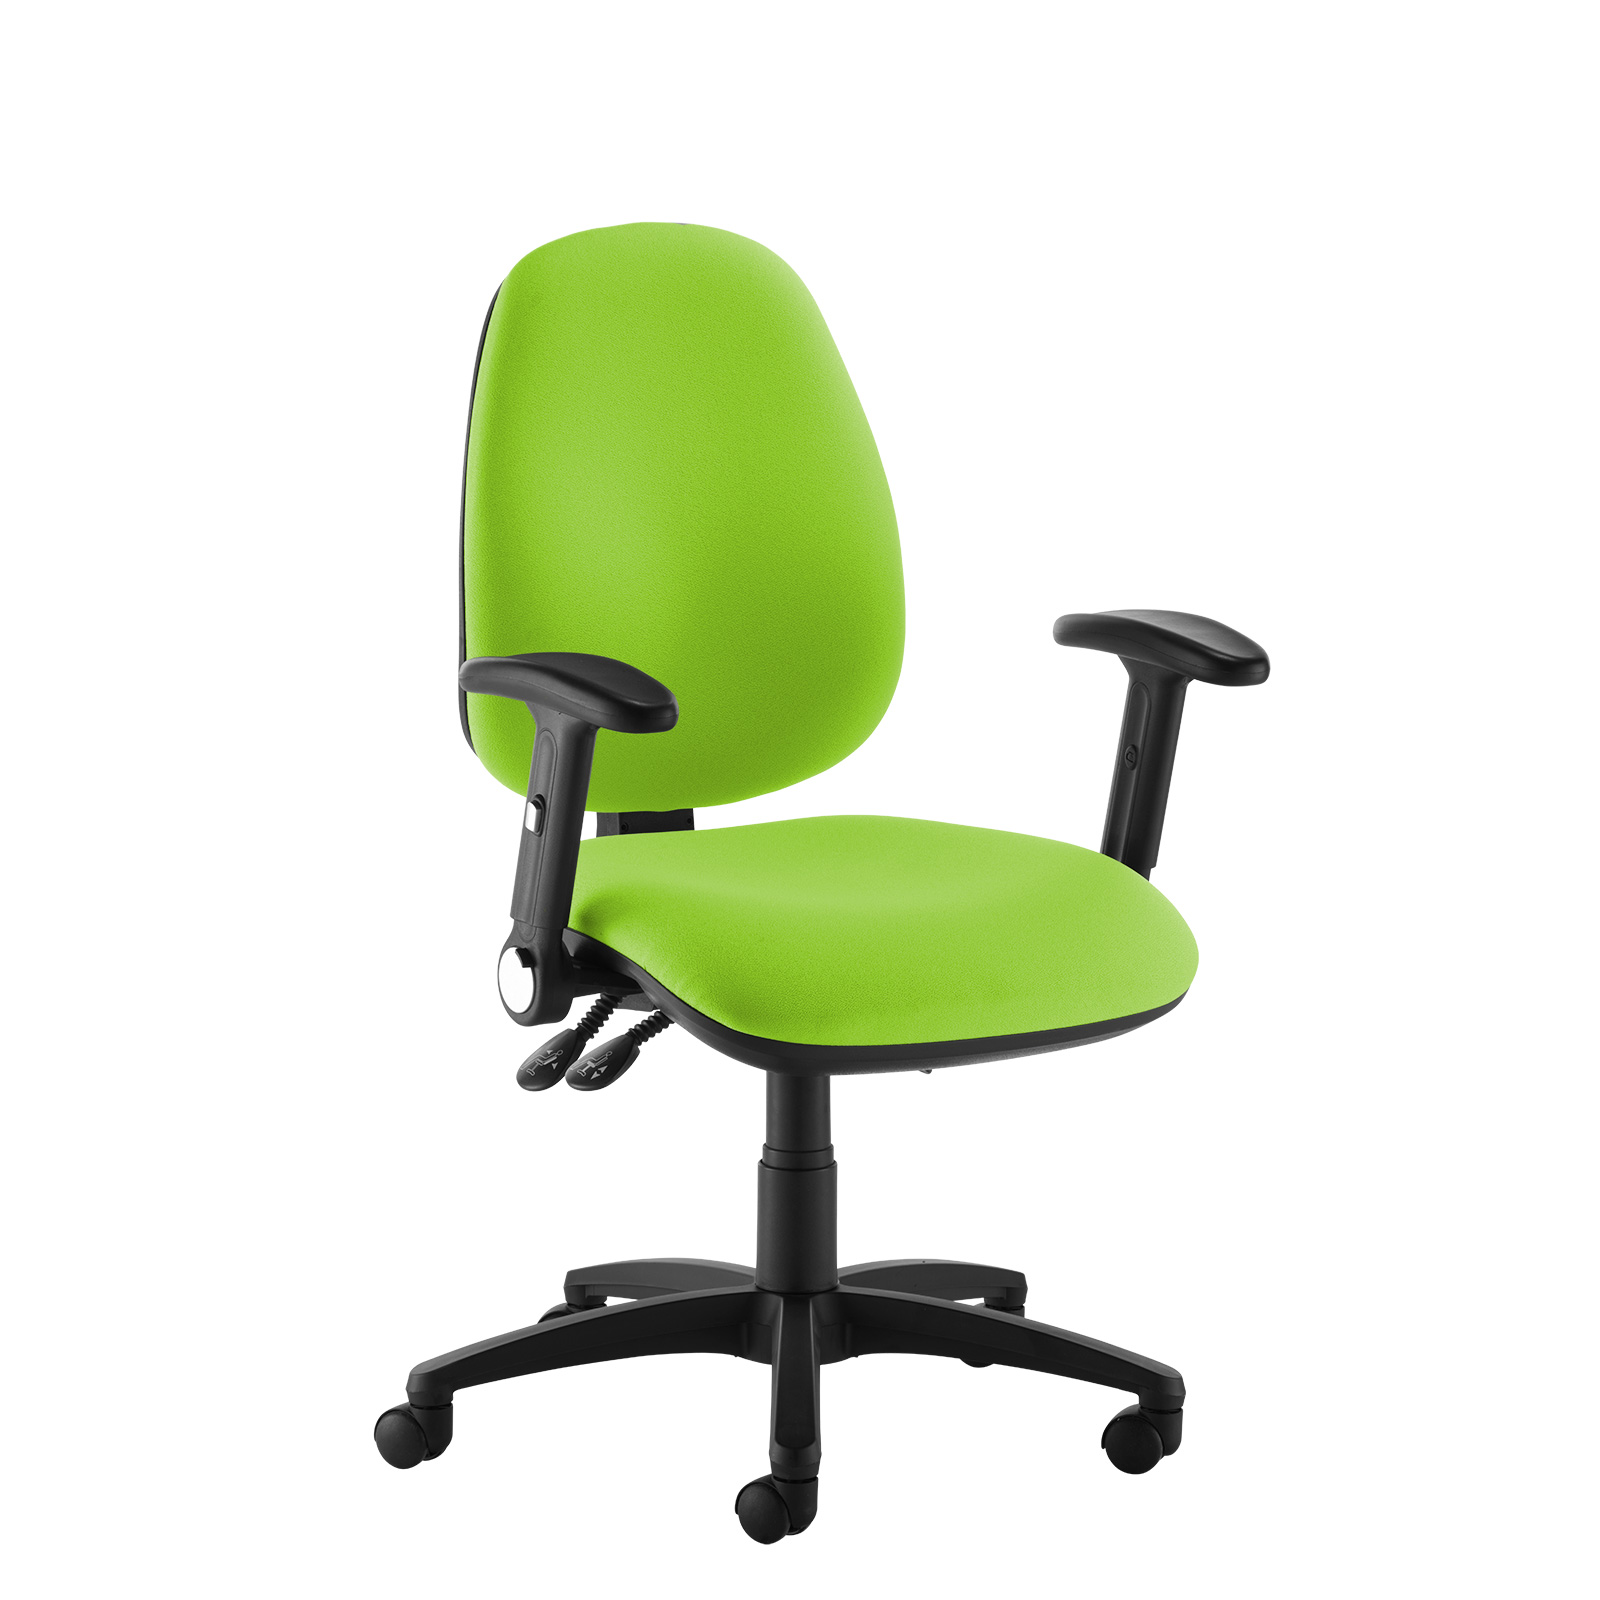 Desk Chairs Jota high back operator chair with folding arms - green